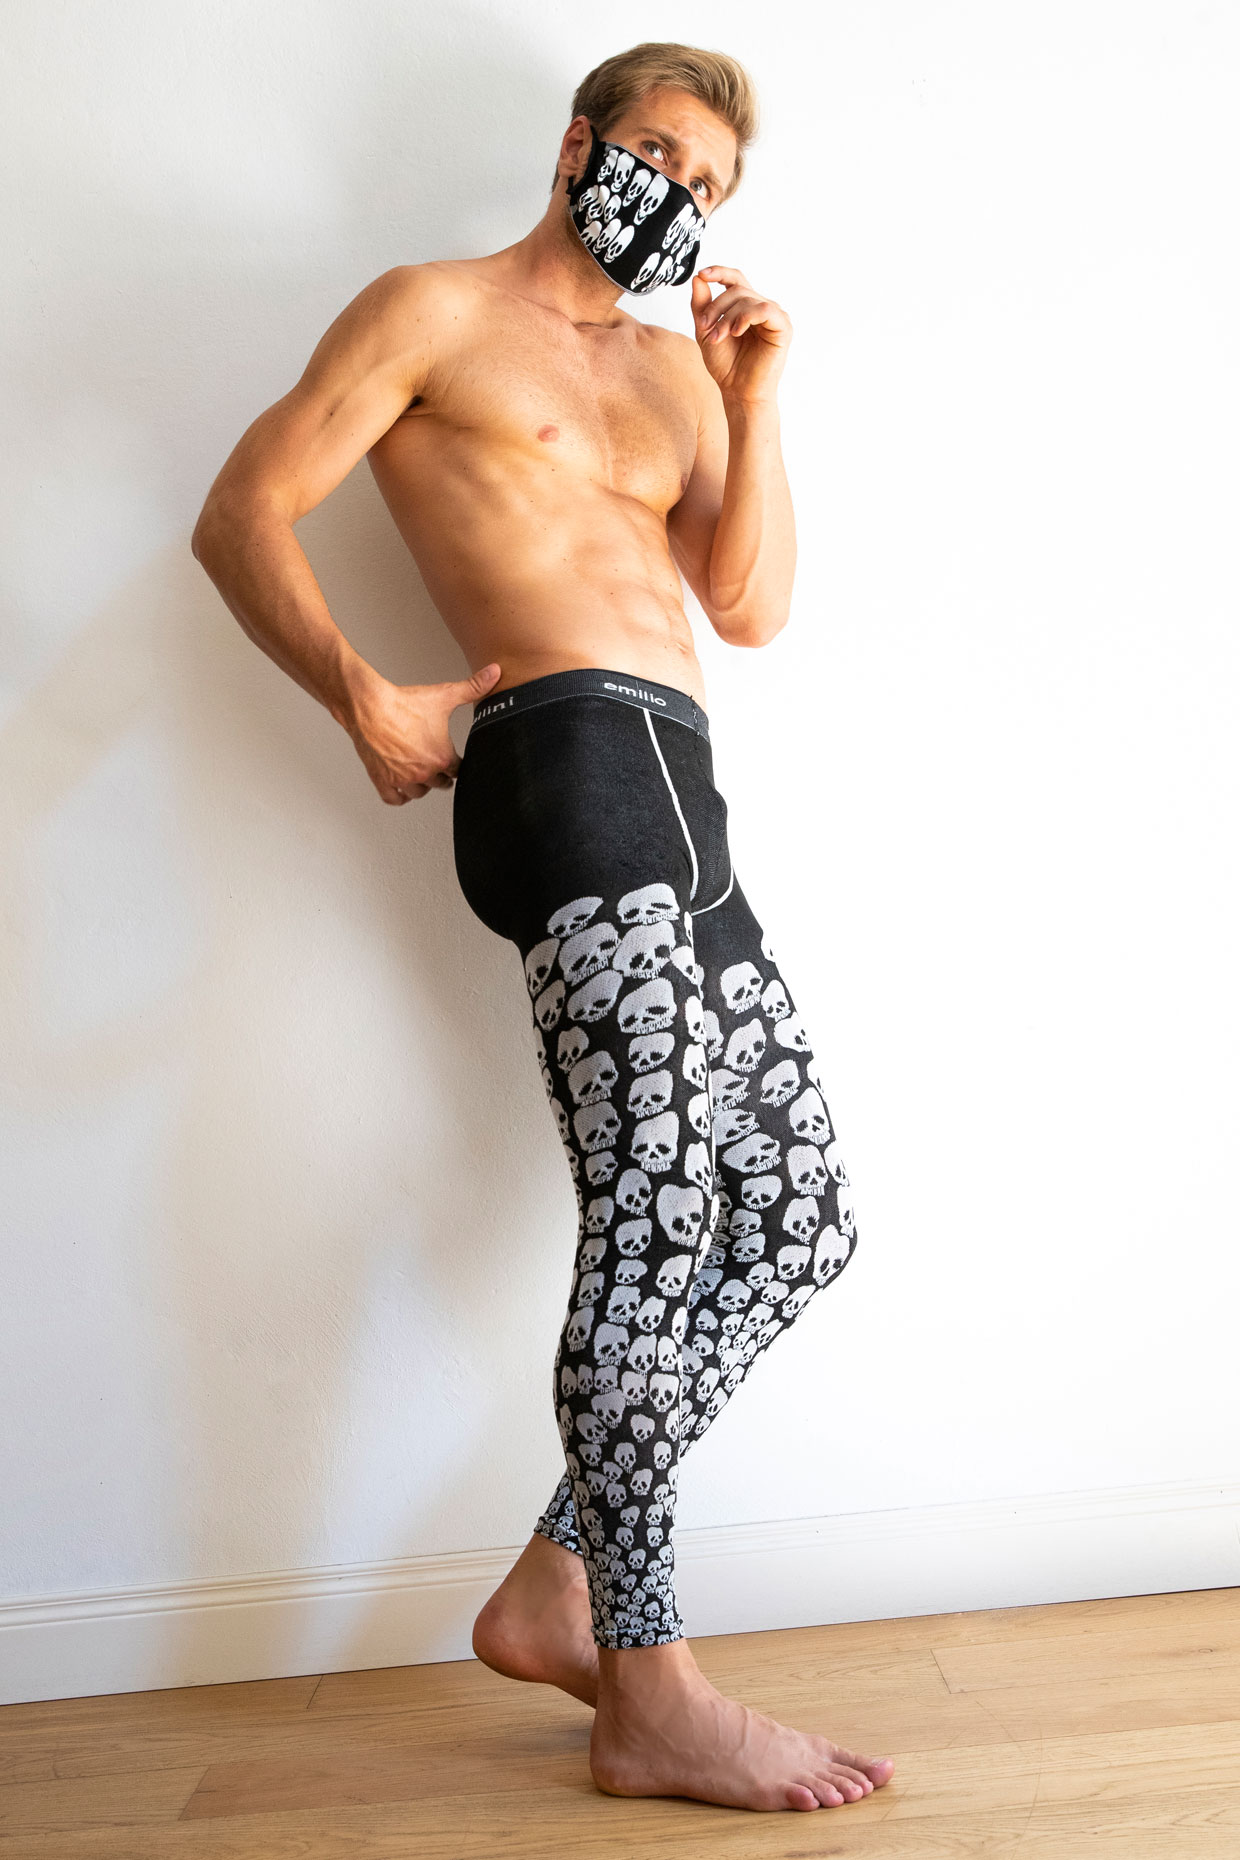 Megging: leggings for men - A new way of being